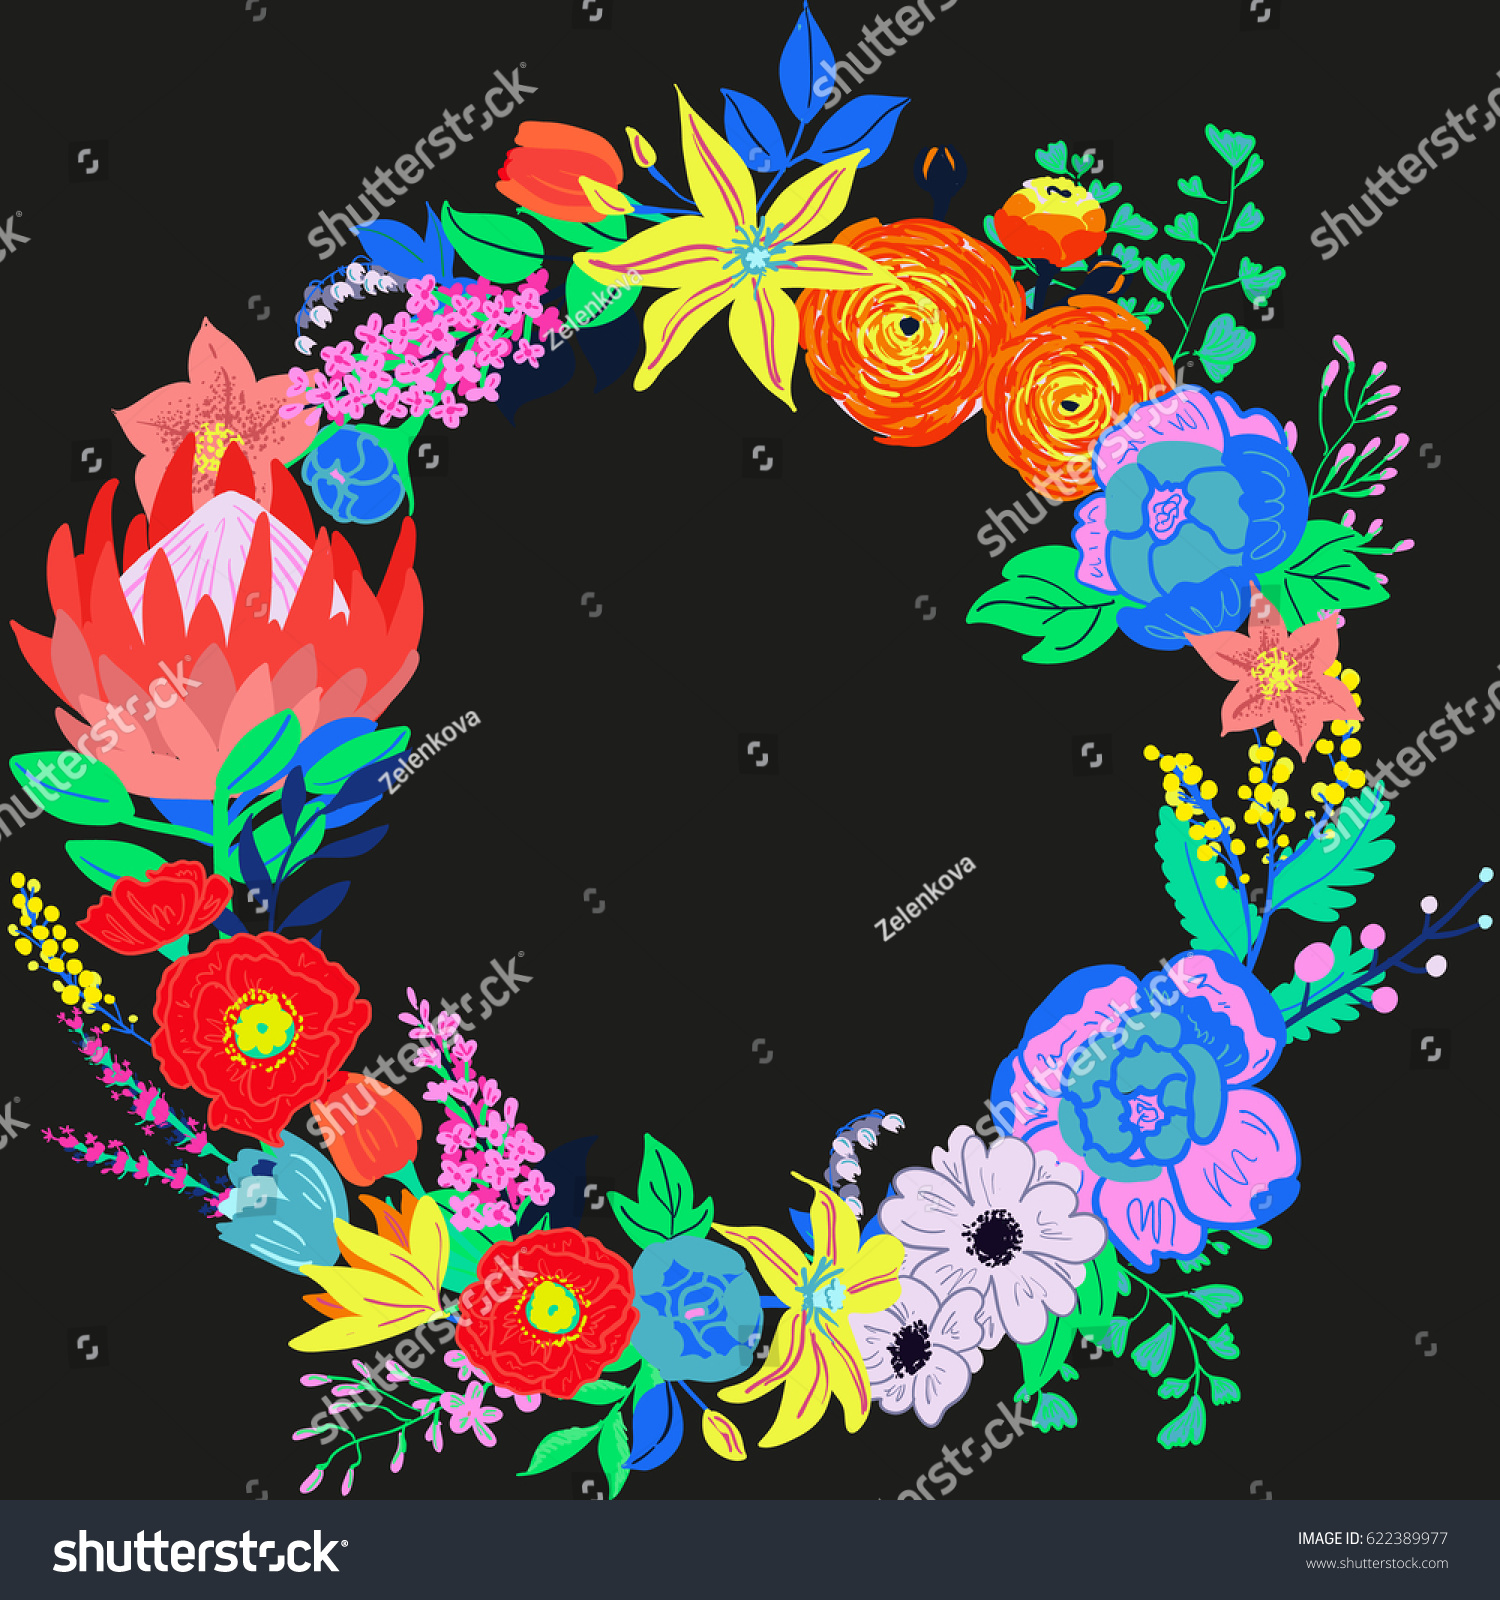 Vector Rustic Hand Drawn Floral Composition Bright Spring Flowers Wreath Vibrant